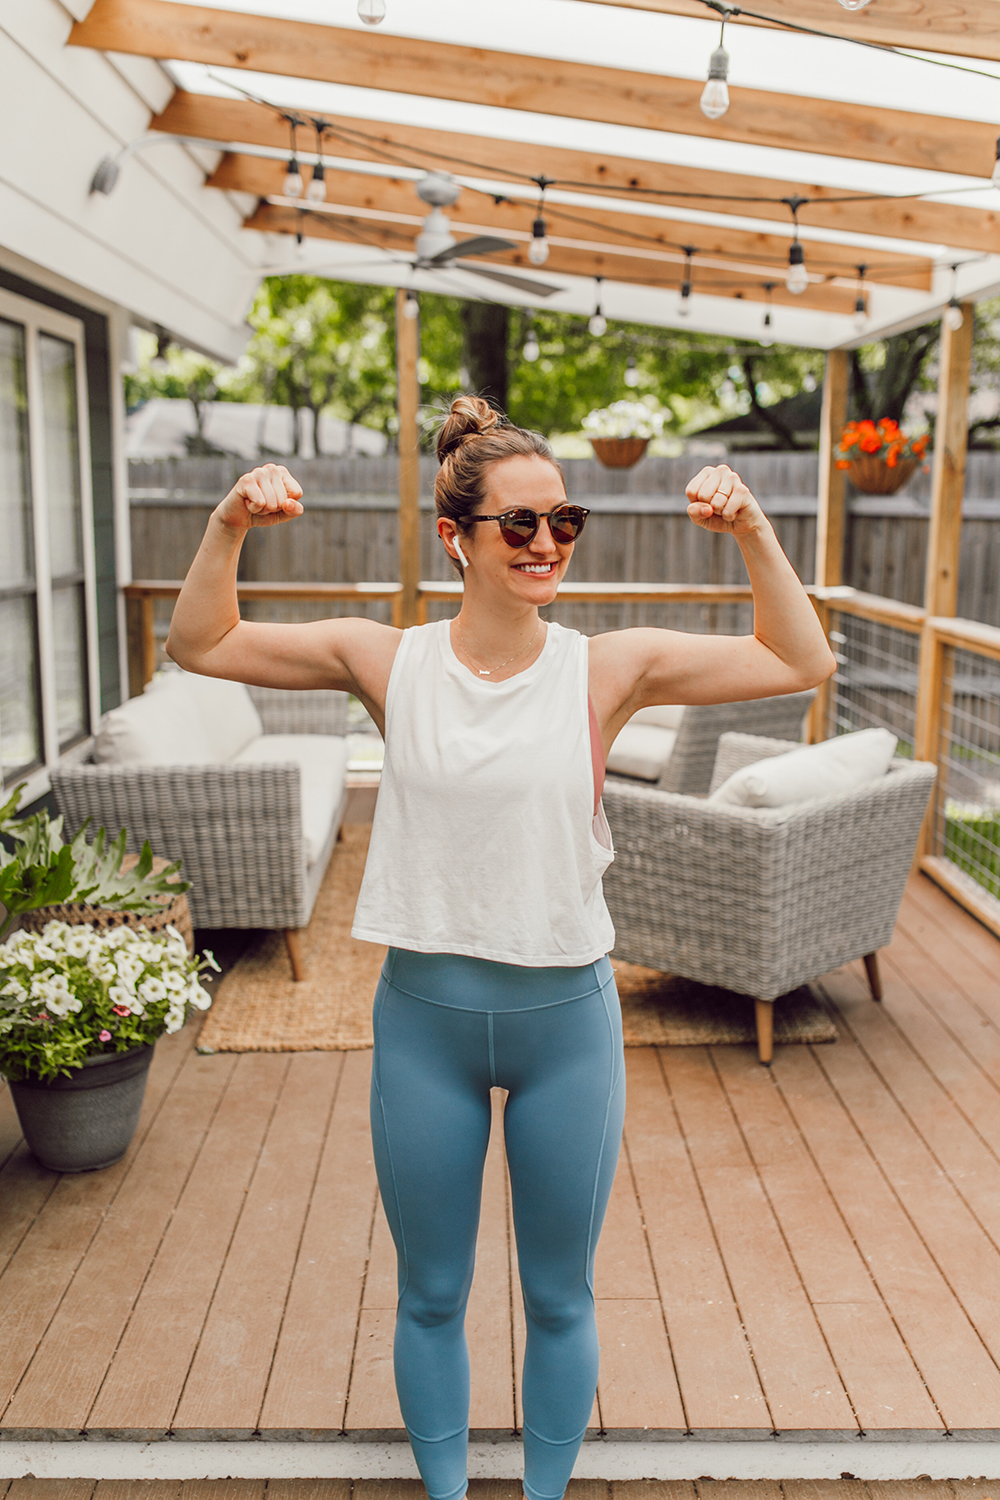 livvyland-blog-olivia-watson-austin-texas-lifestyle-blogger-lululemon-in-movement-leggings-long-lines-energy-bra-postpartum-workout-routine-9